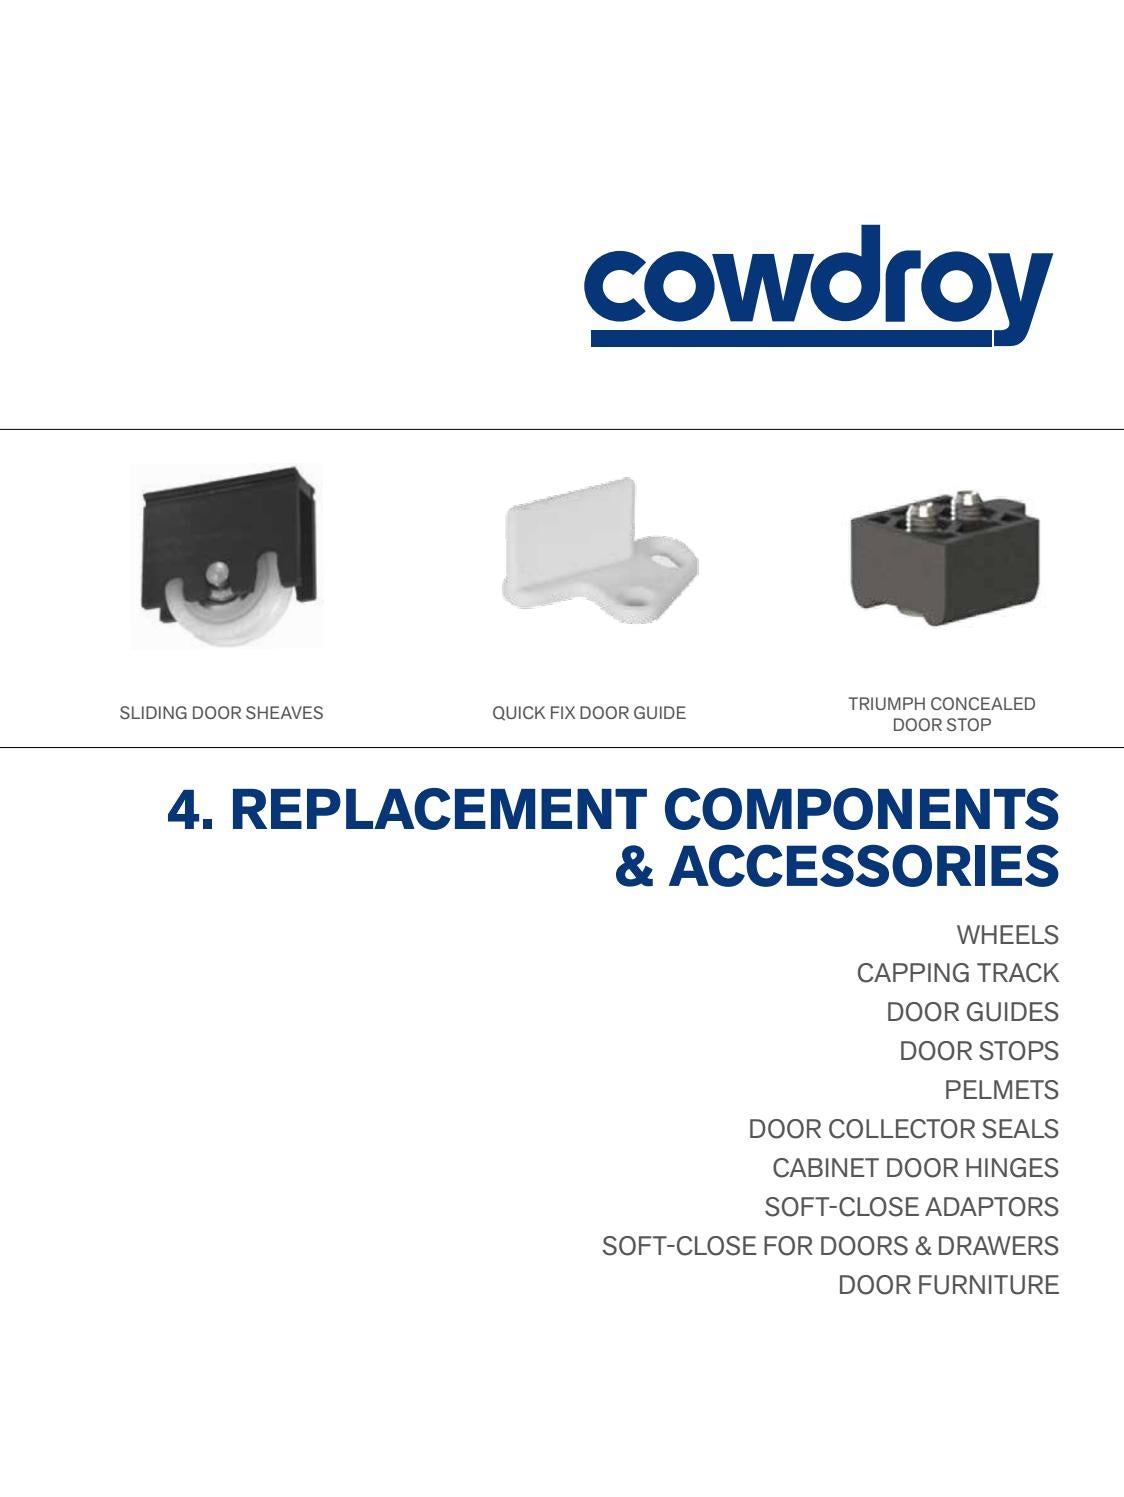 Cowdroy Catalogue Section 4 Replacement Components And Accessories